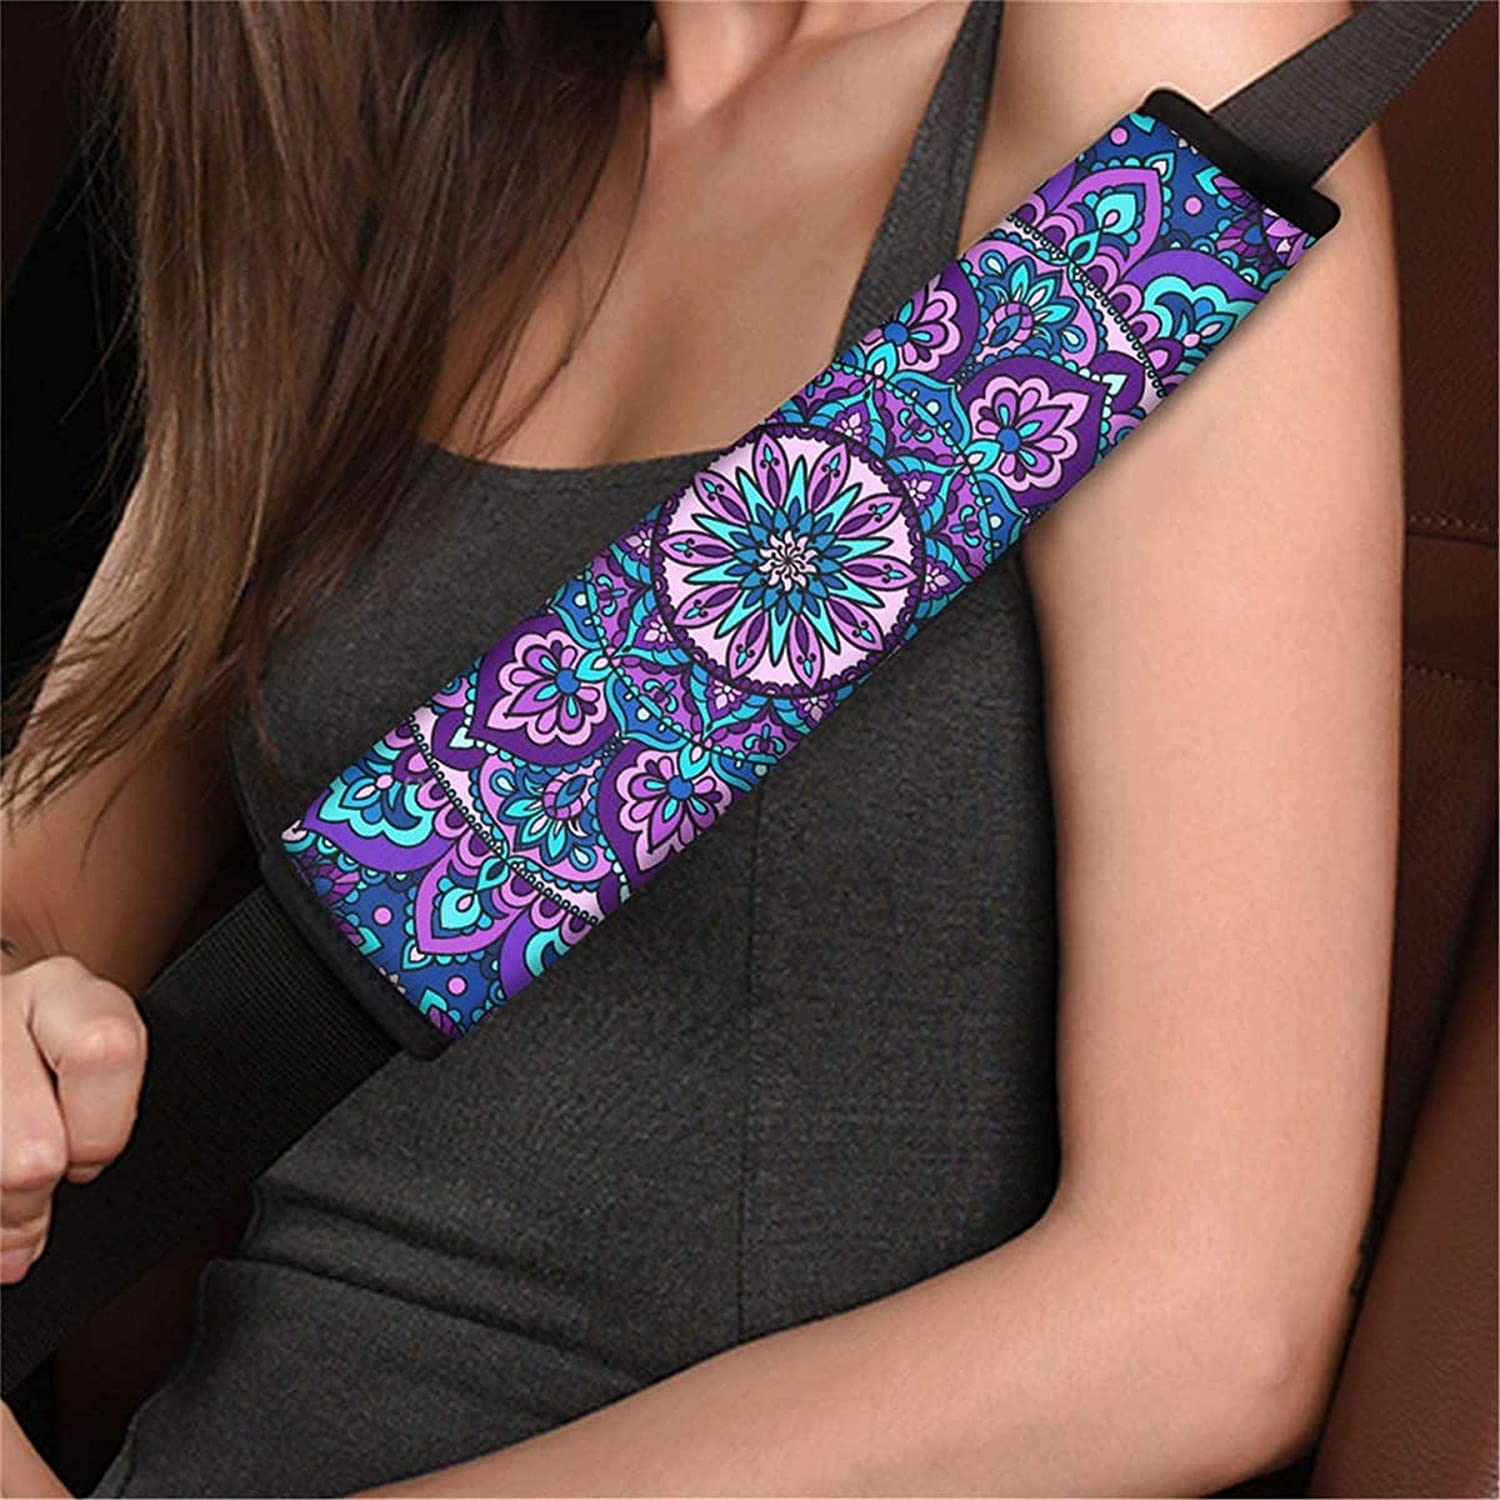 Cozeyat Purple Tops Bohemia Flowers Seat Belt Softy Cover Women Men Enthic Style Neoprene Auto Seat Belt Cover Sleeves 2 Pieces